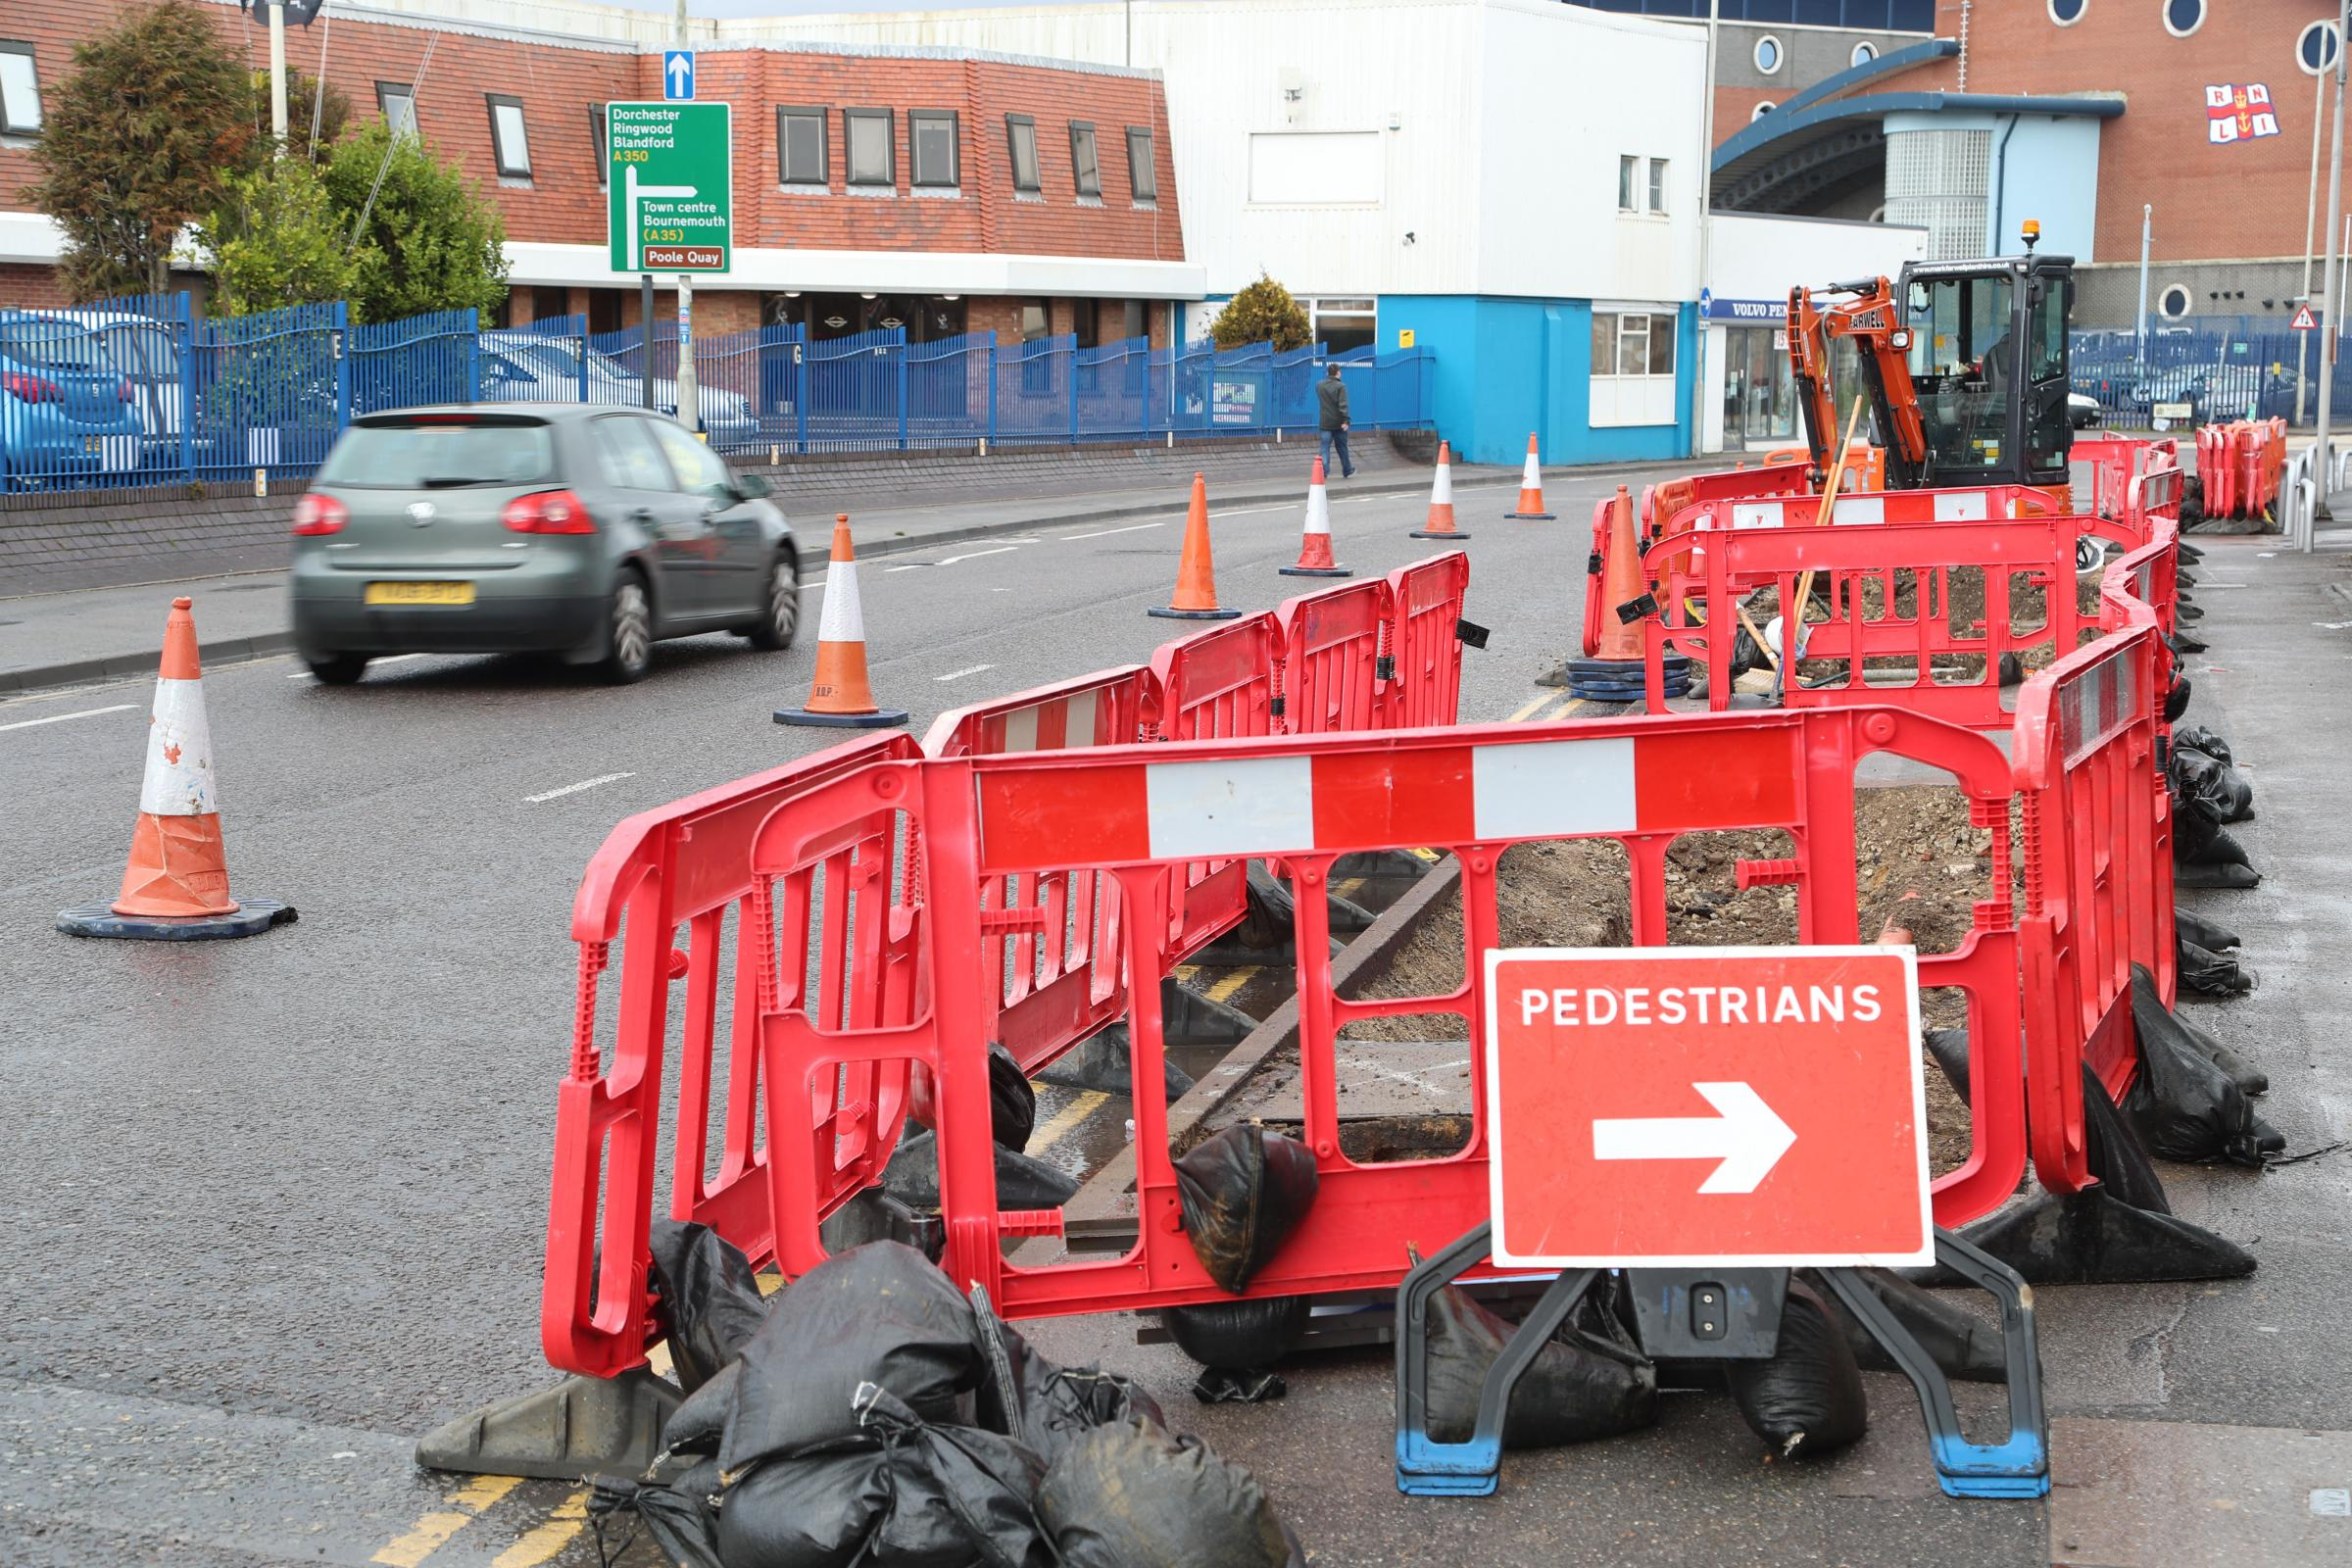 'One-way system in Poole town centre would marginalise cyclists'